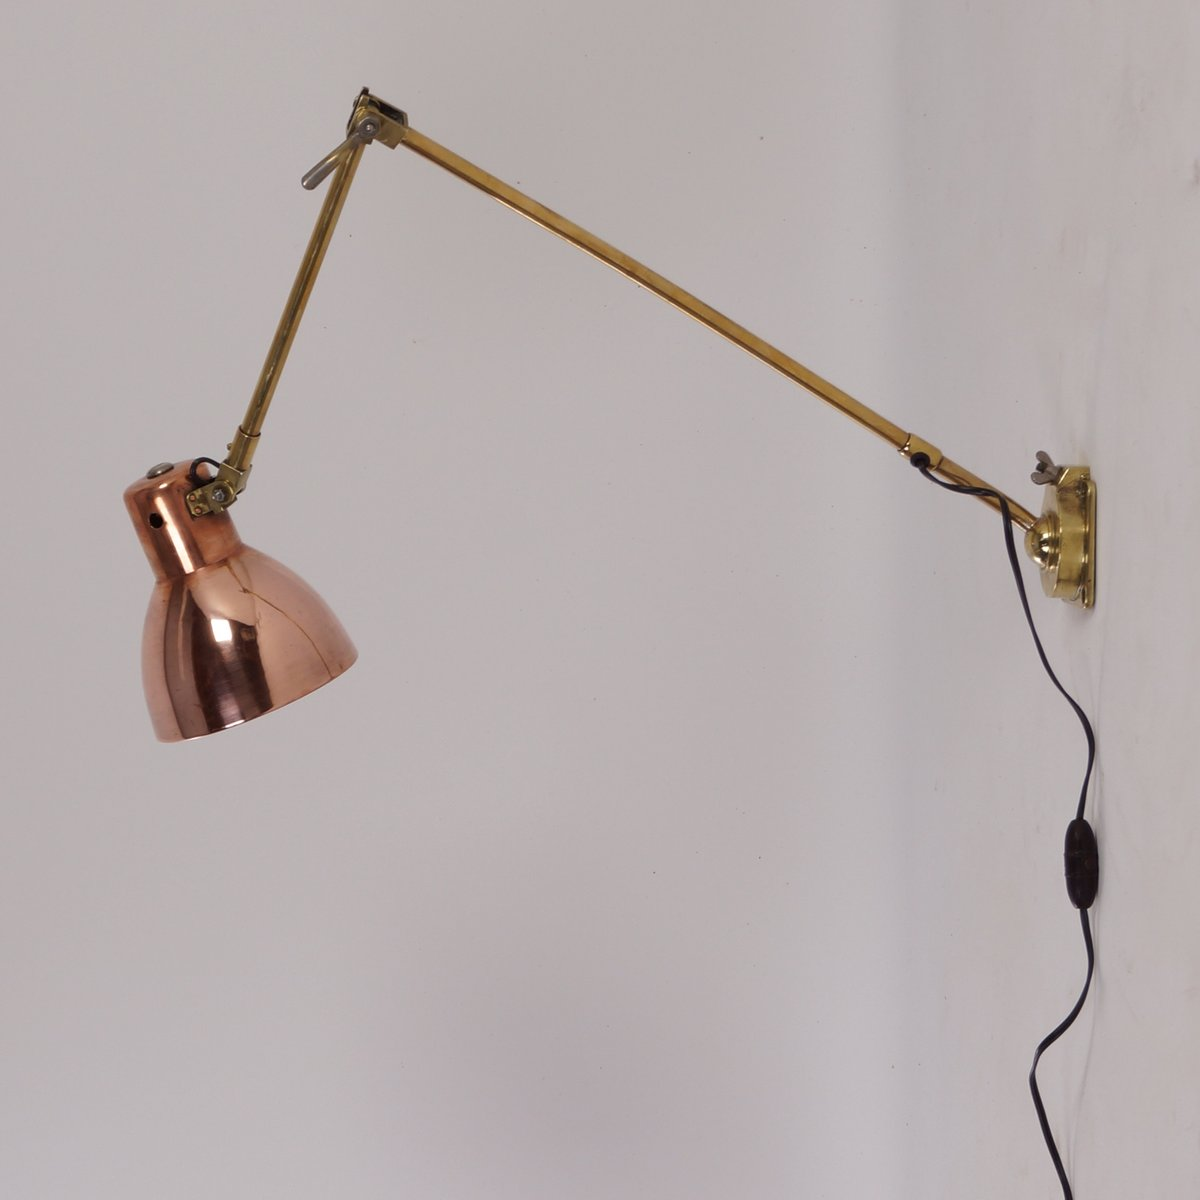 Wall Lamps Brass : Bauhaus Copper & Brass Wall Lamp from Kandem, 1930s for sale at Pamono